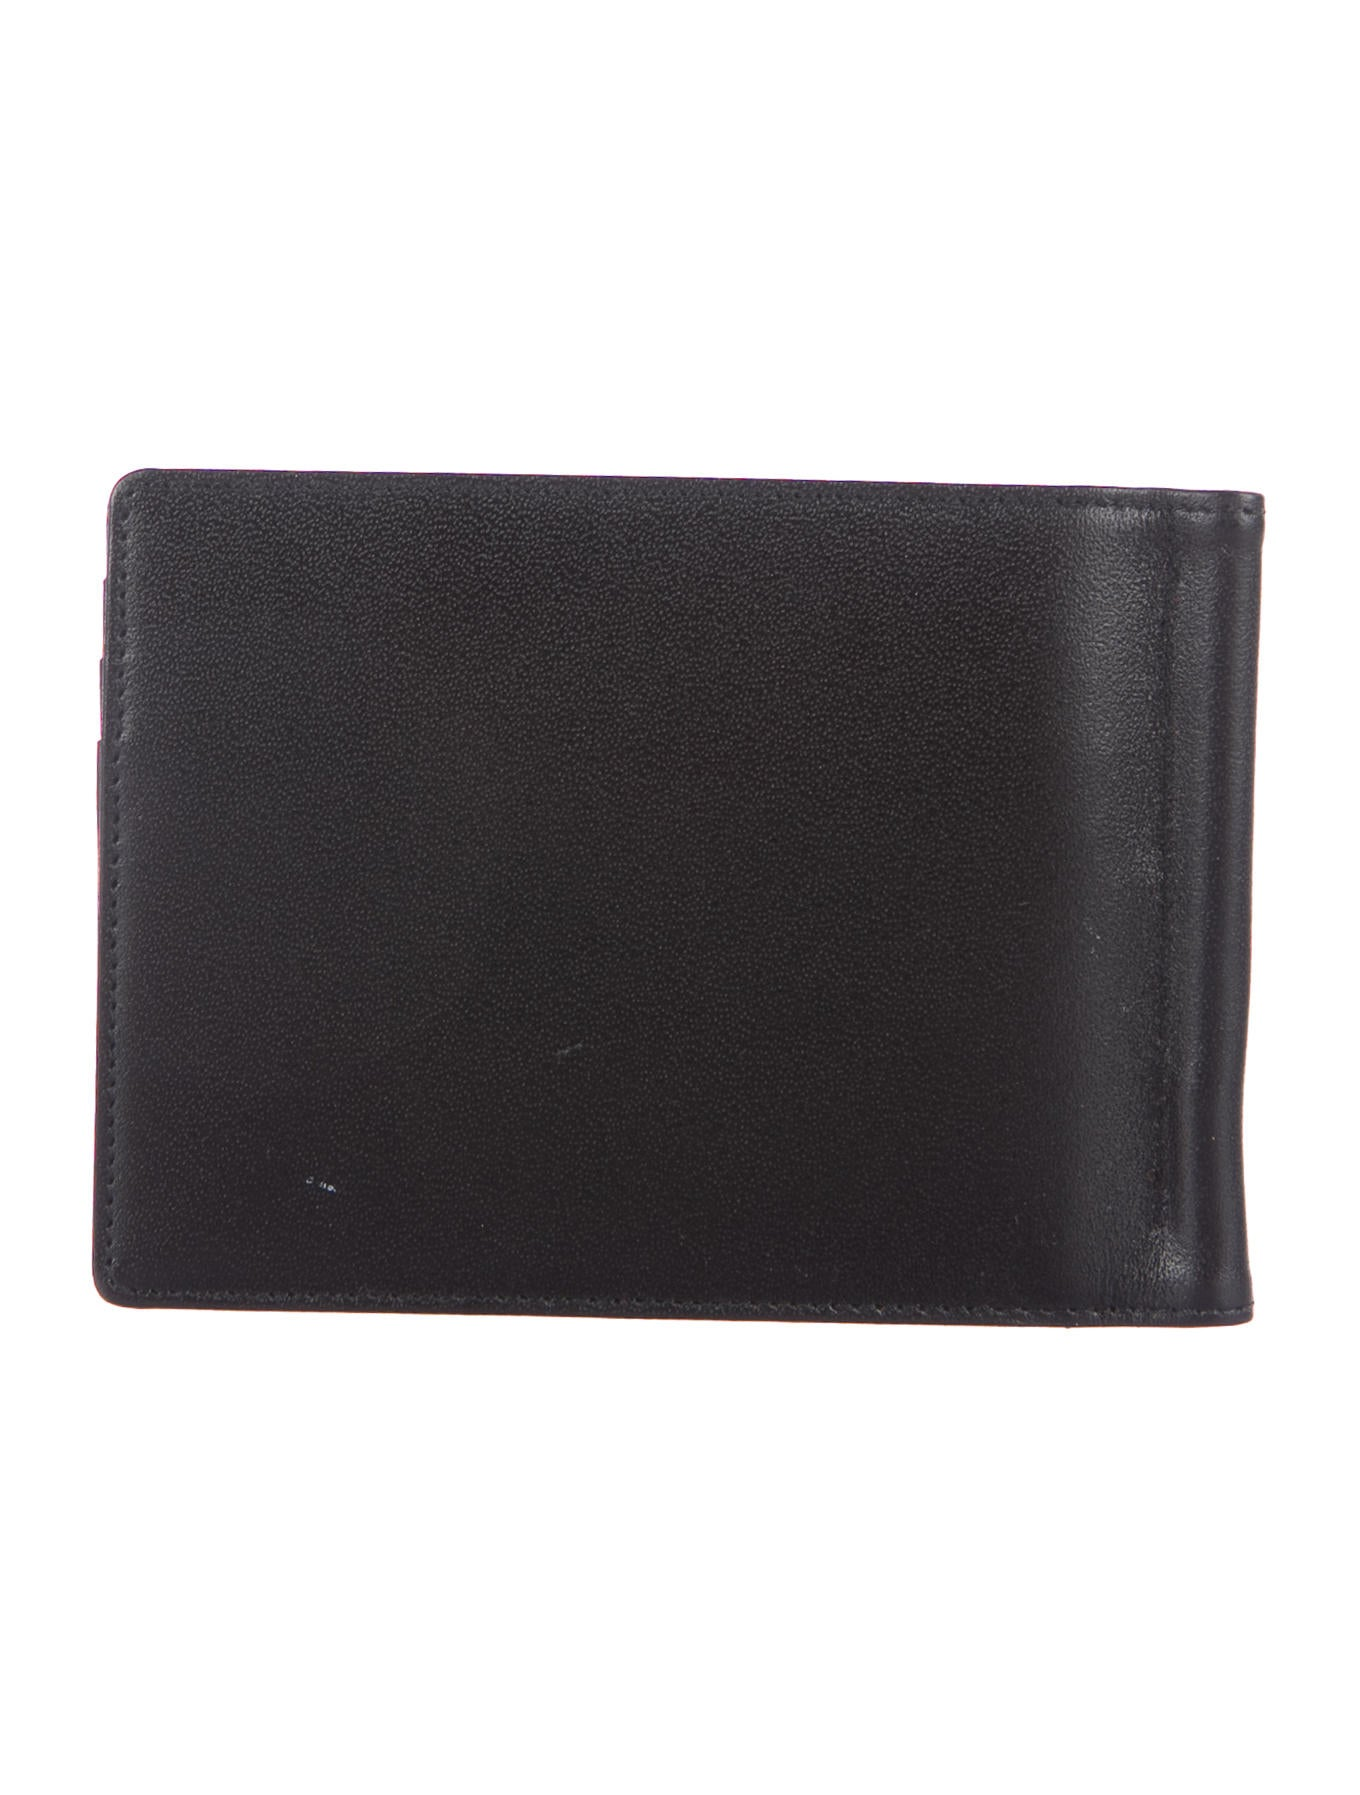 Mont Blanc Leather Money Clip Wallet Accessories  : MOB203284enlarged from www.therealreal.com size 1360 x 1795 jpeg 162kB